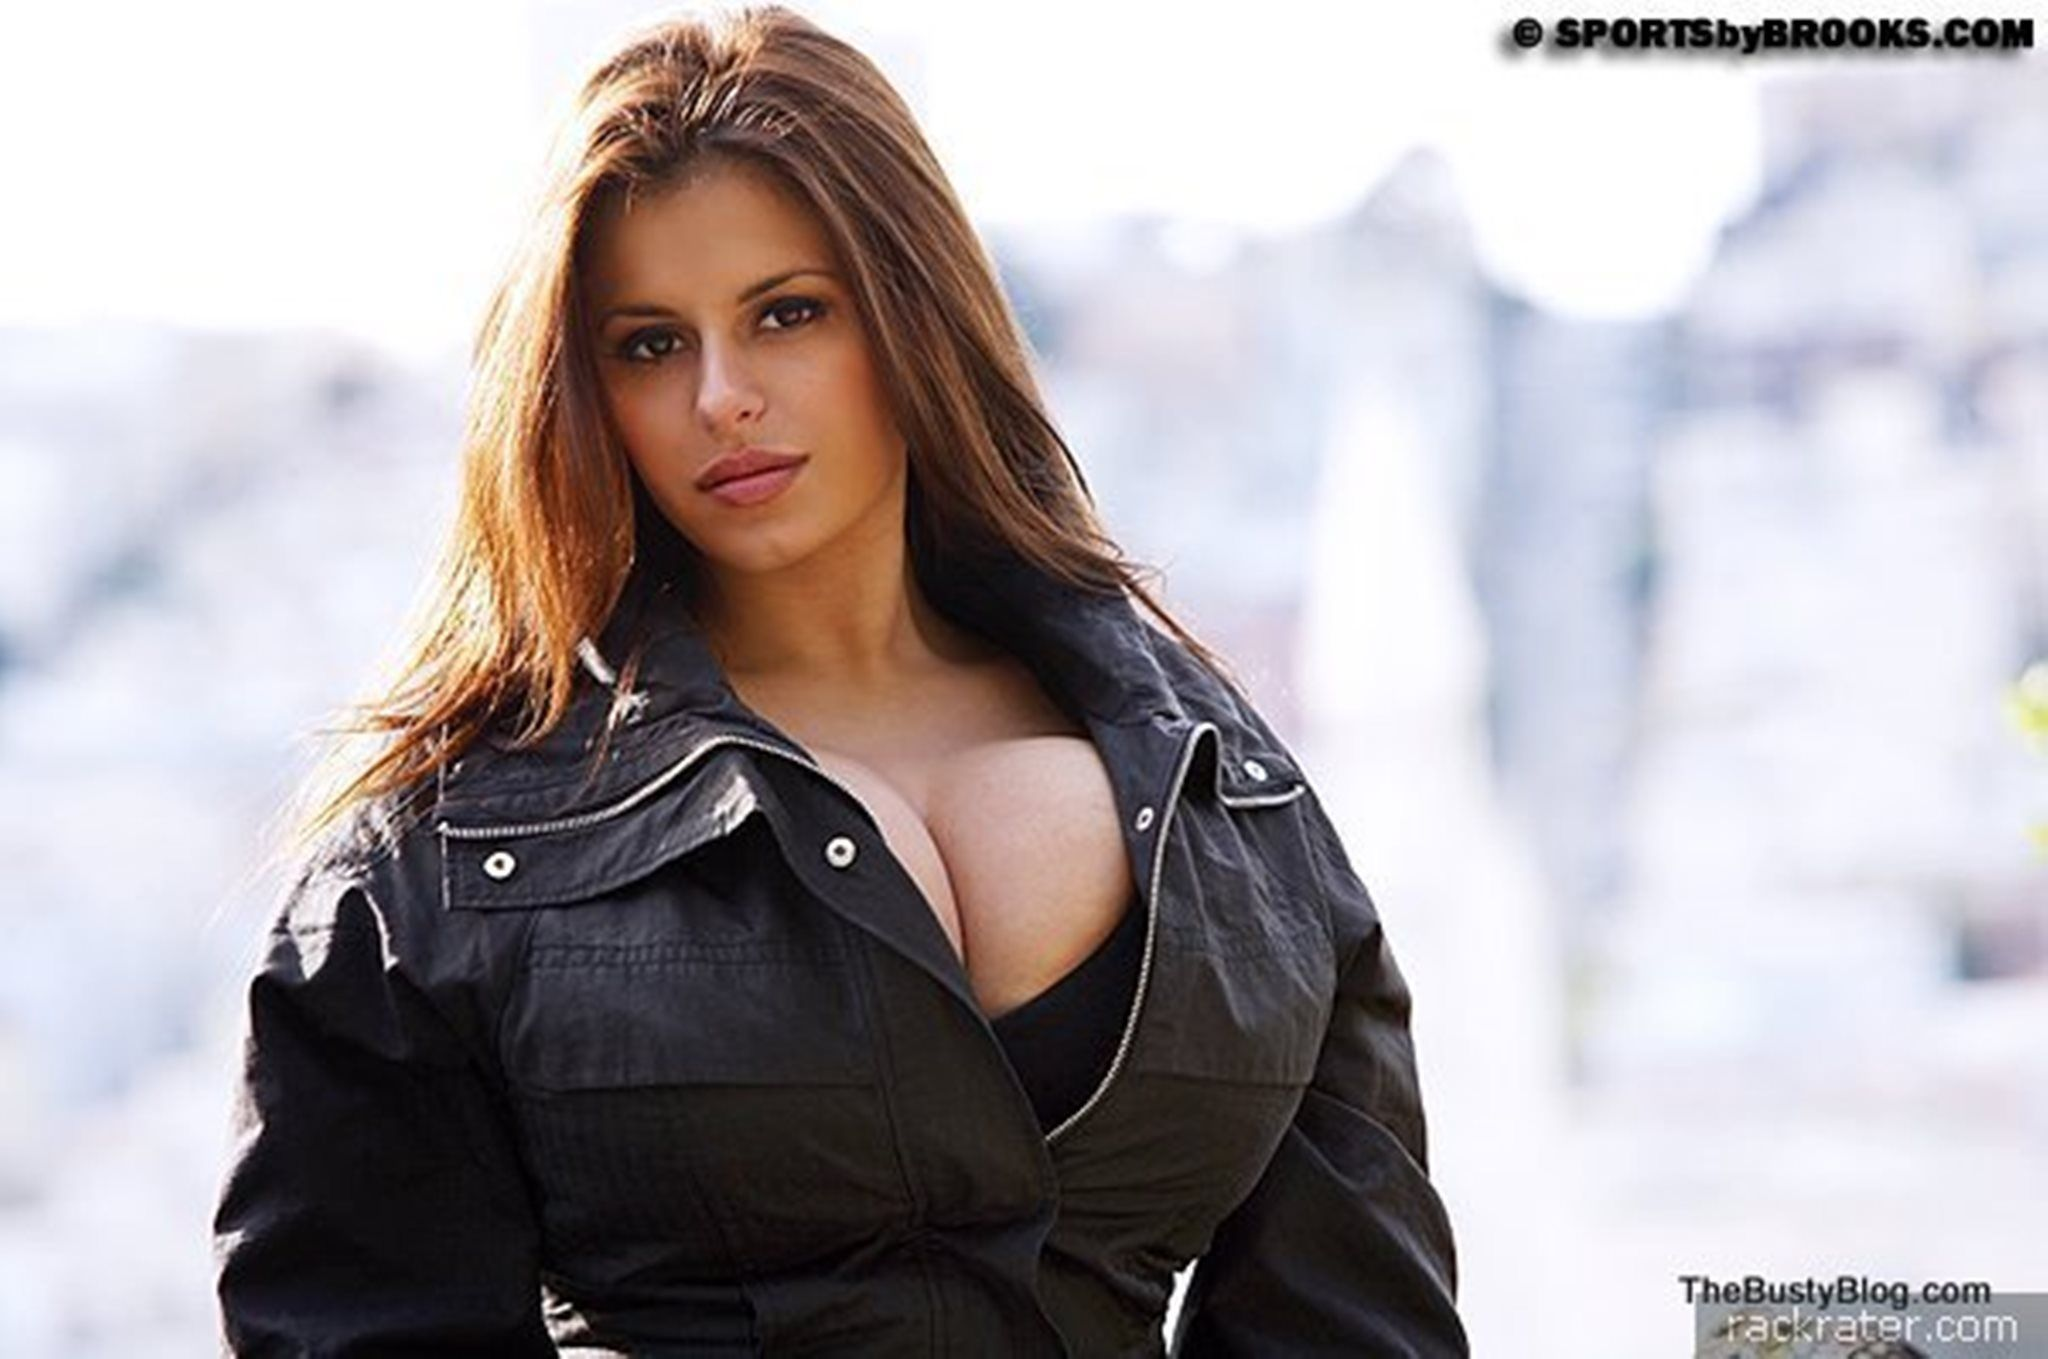 Leather Jacket | Wendy Fiore | Pinterest